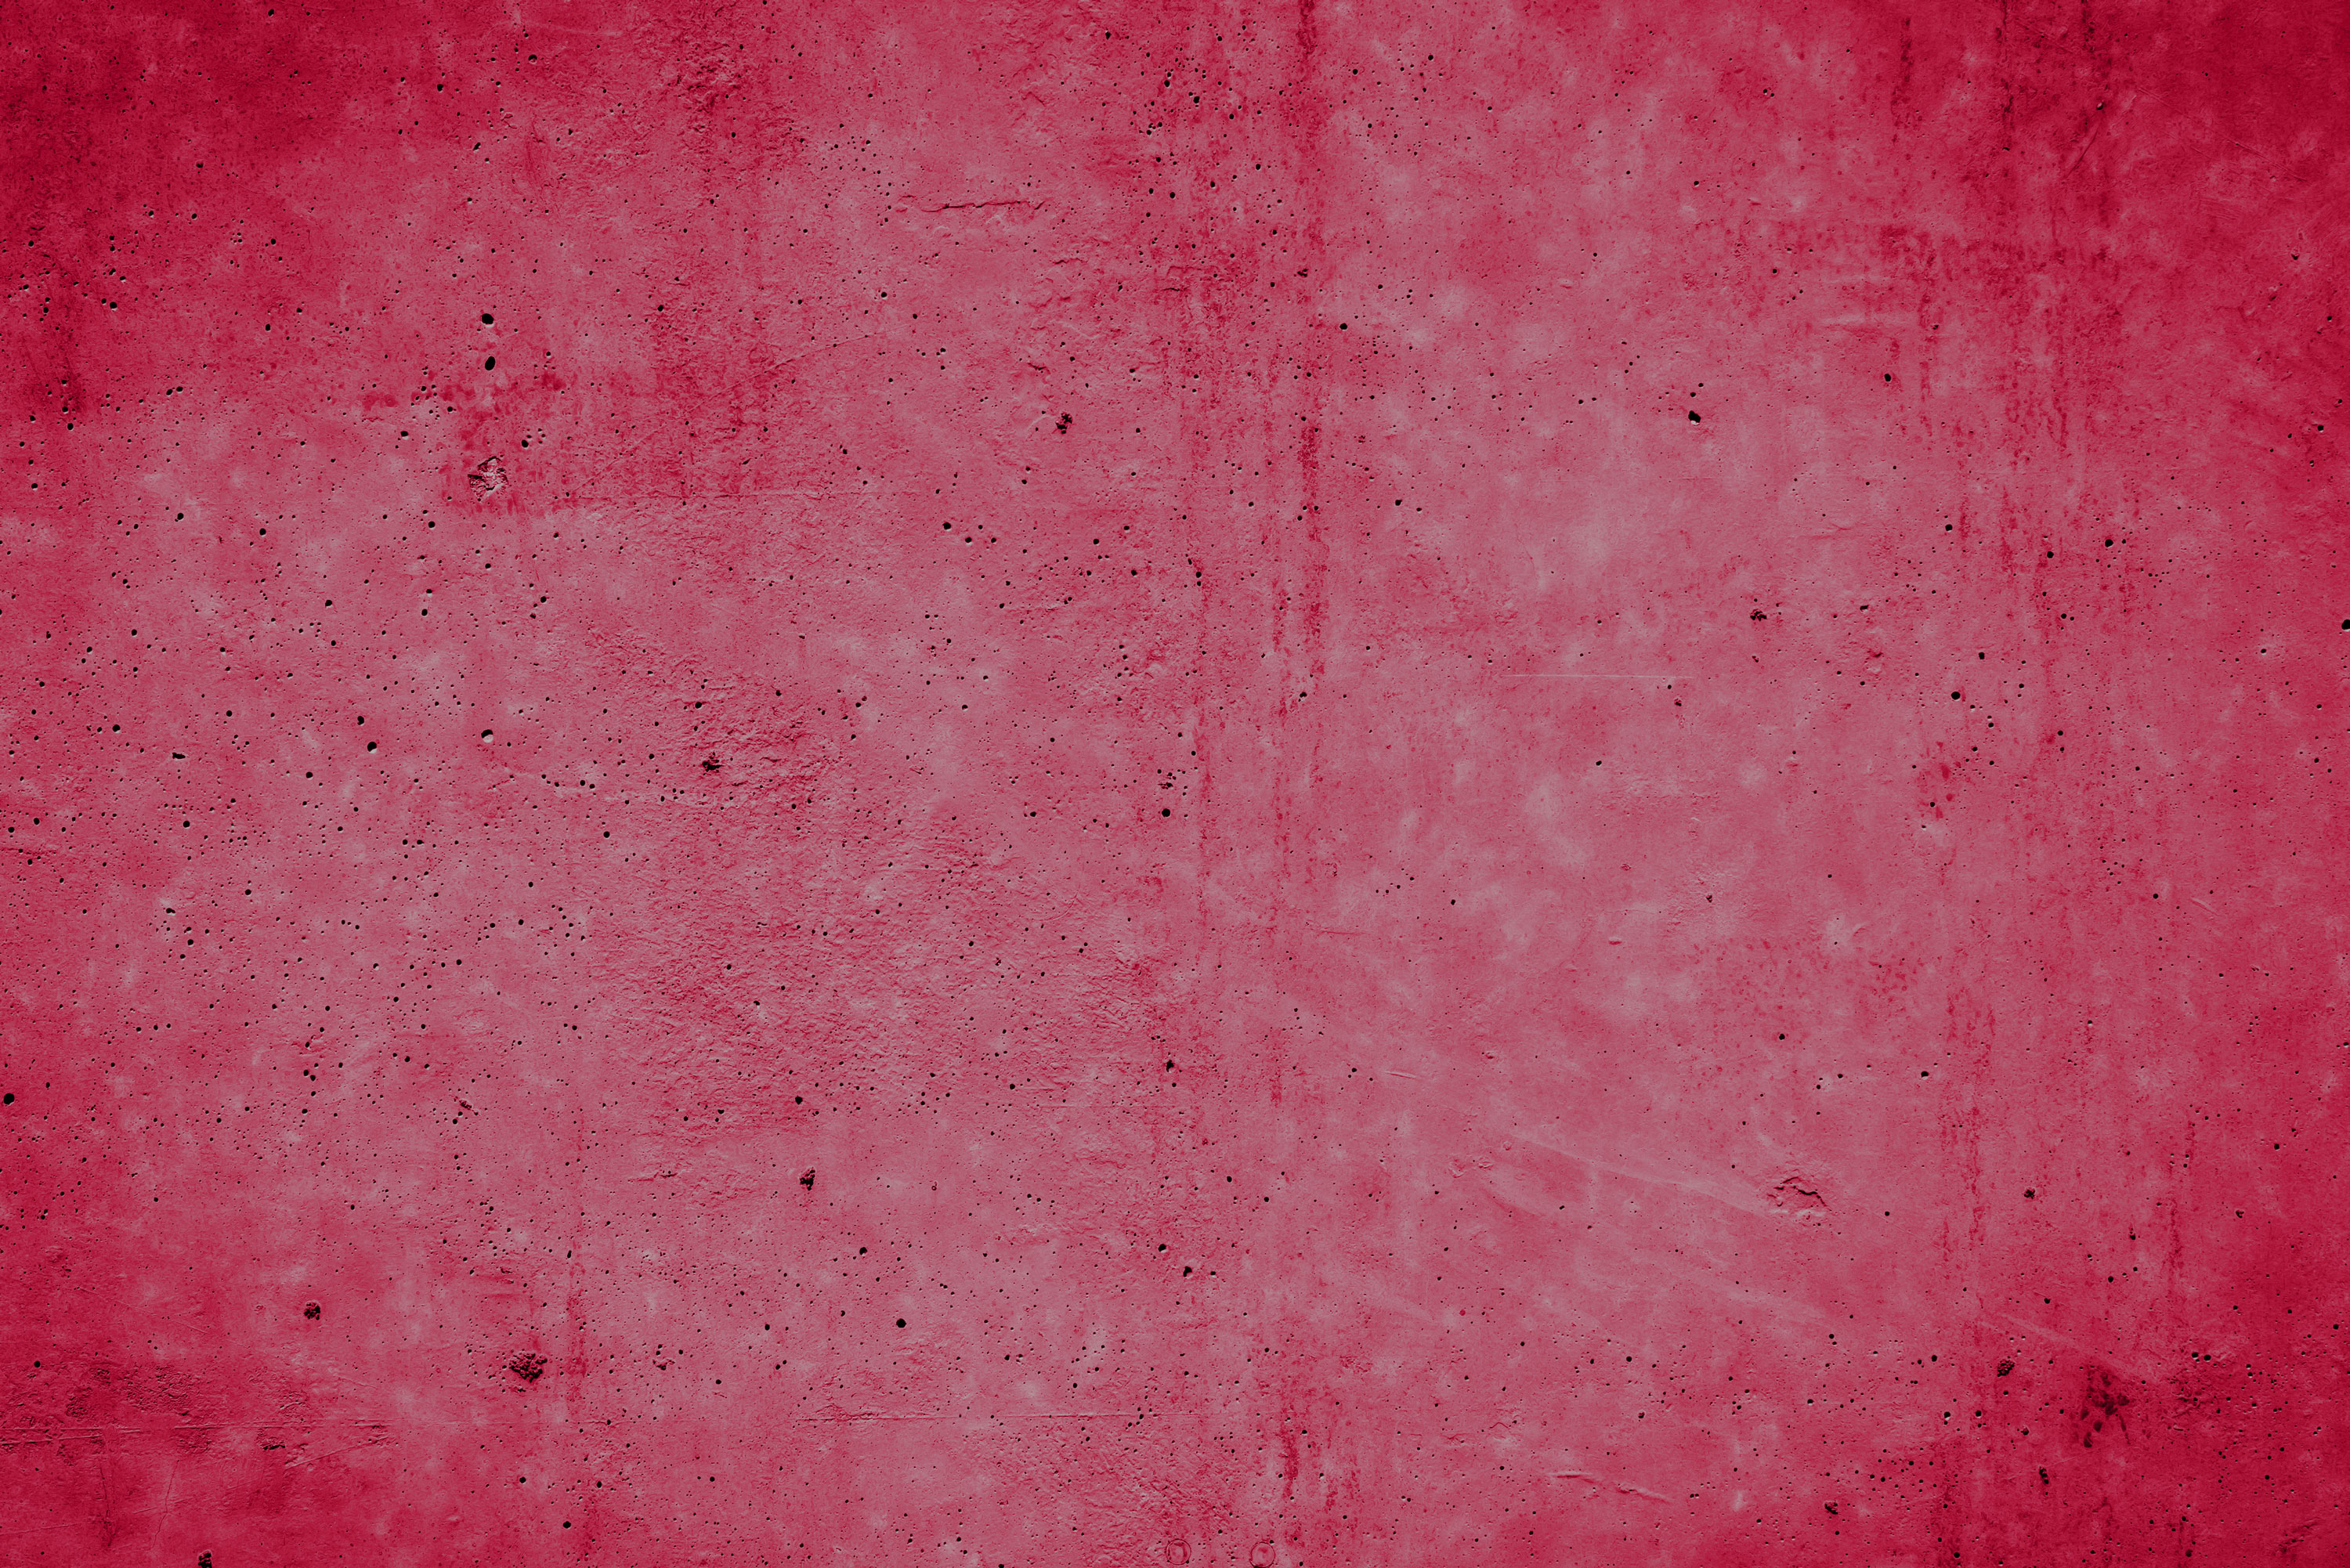 bg-templates-red-concrete.jpg